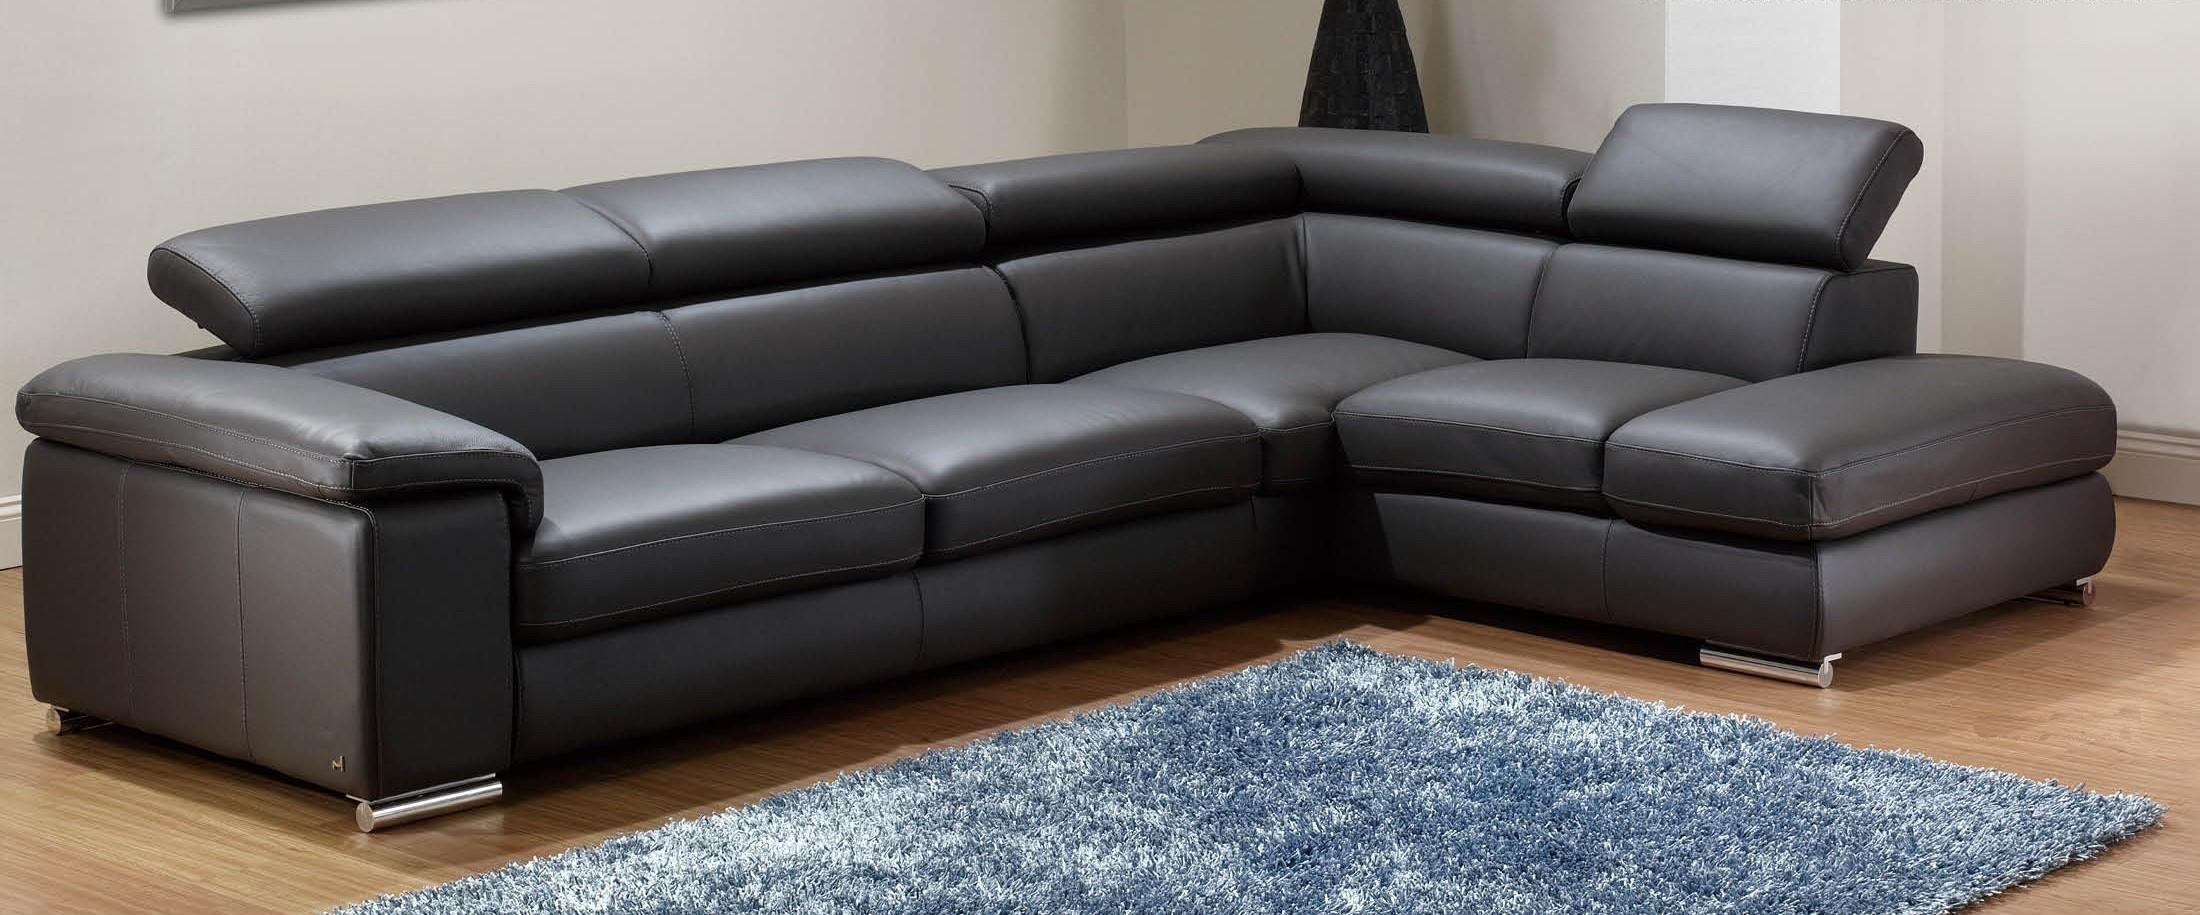 Asian Style Leather Sectional Sofas Modern Sofa Creations Brand Intended For Asian Style Sofas (Image 1 of 20)